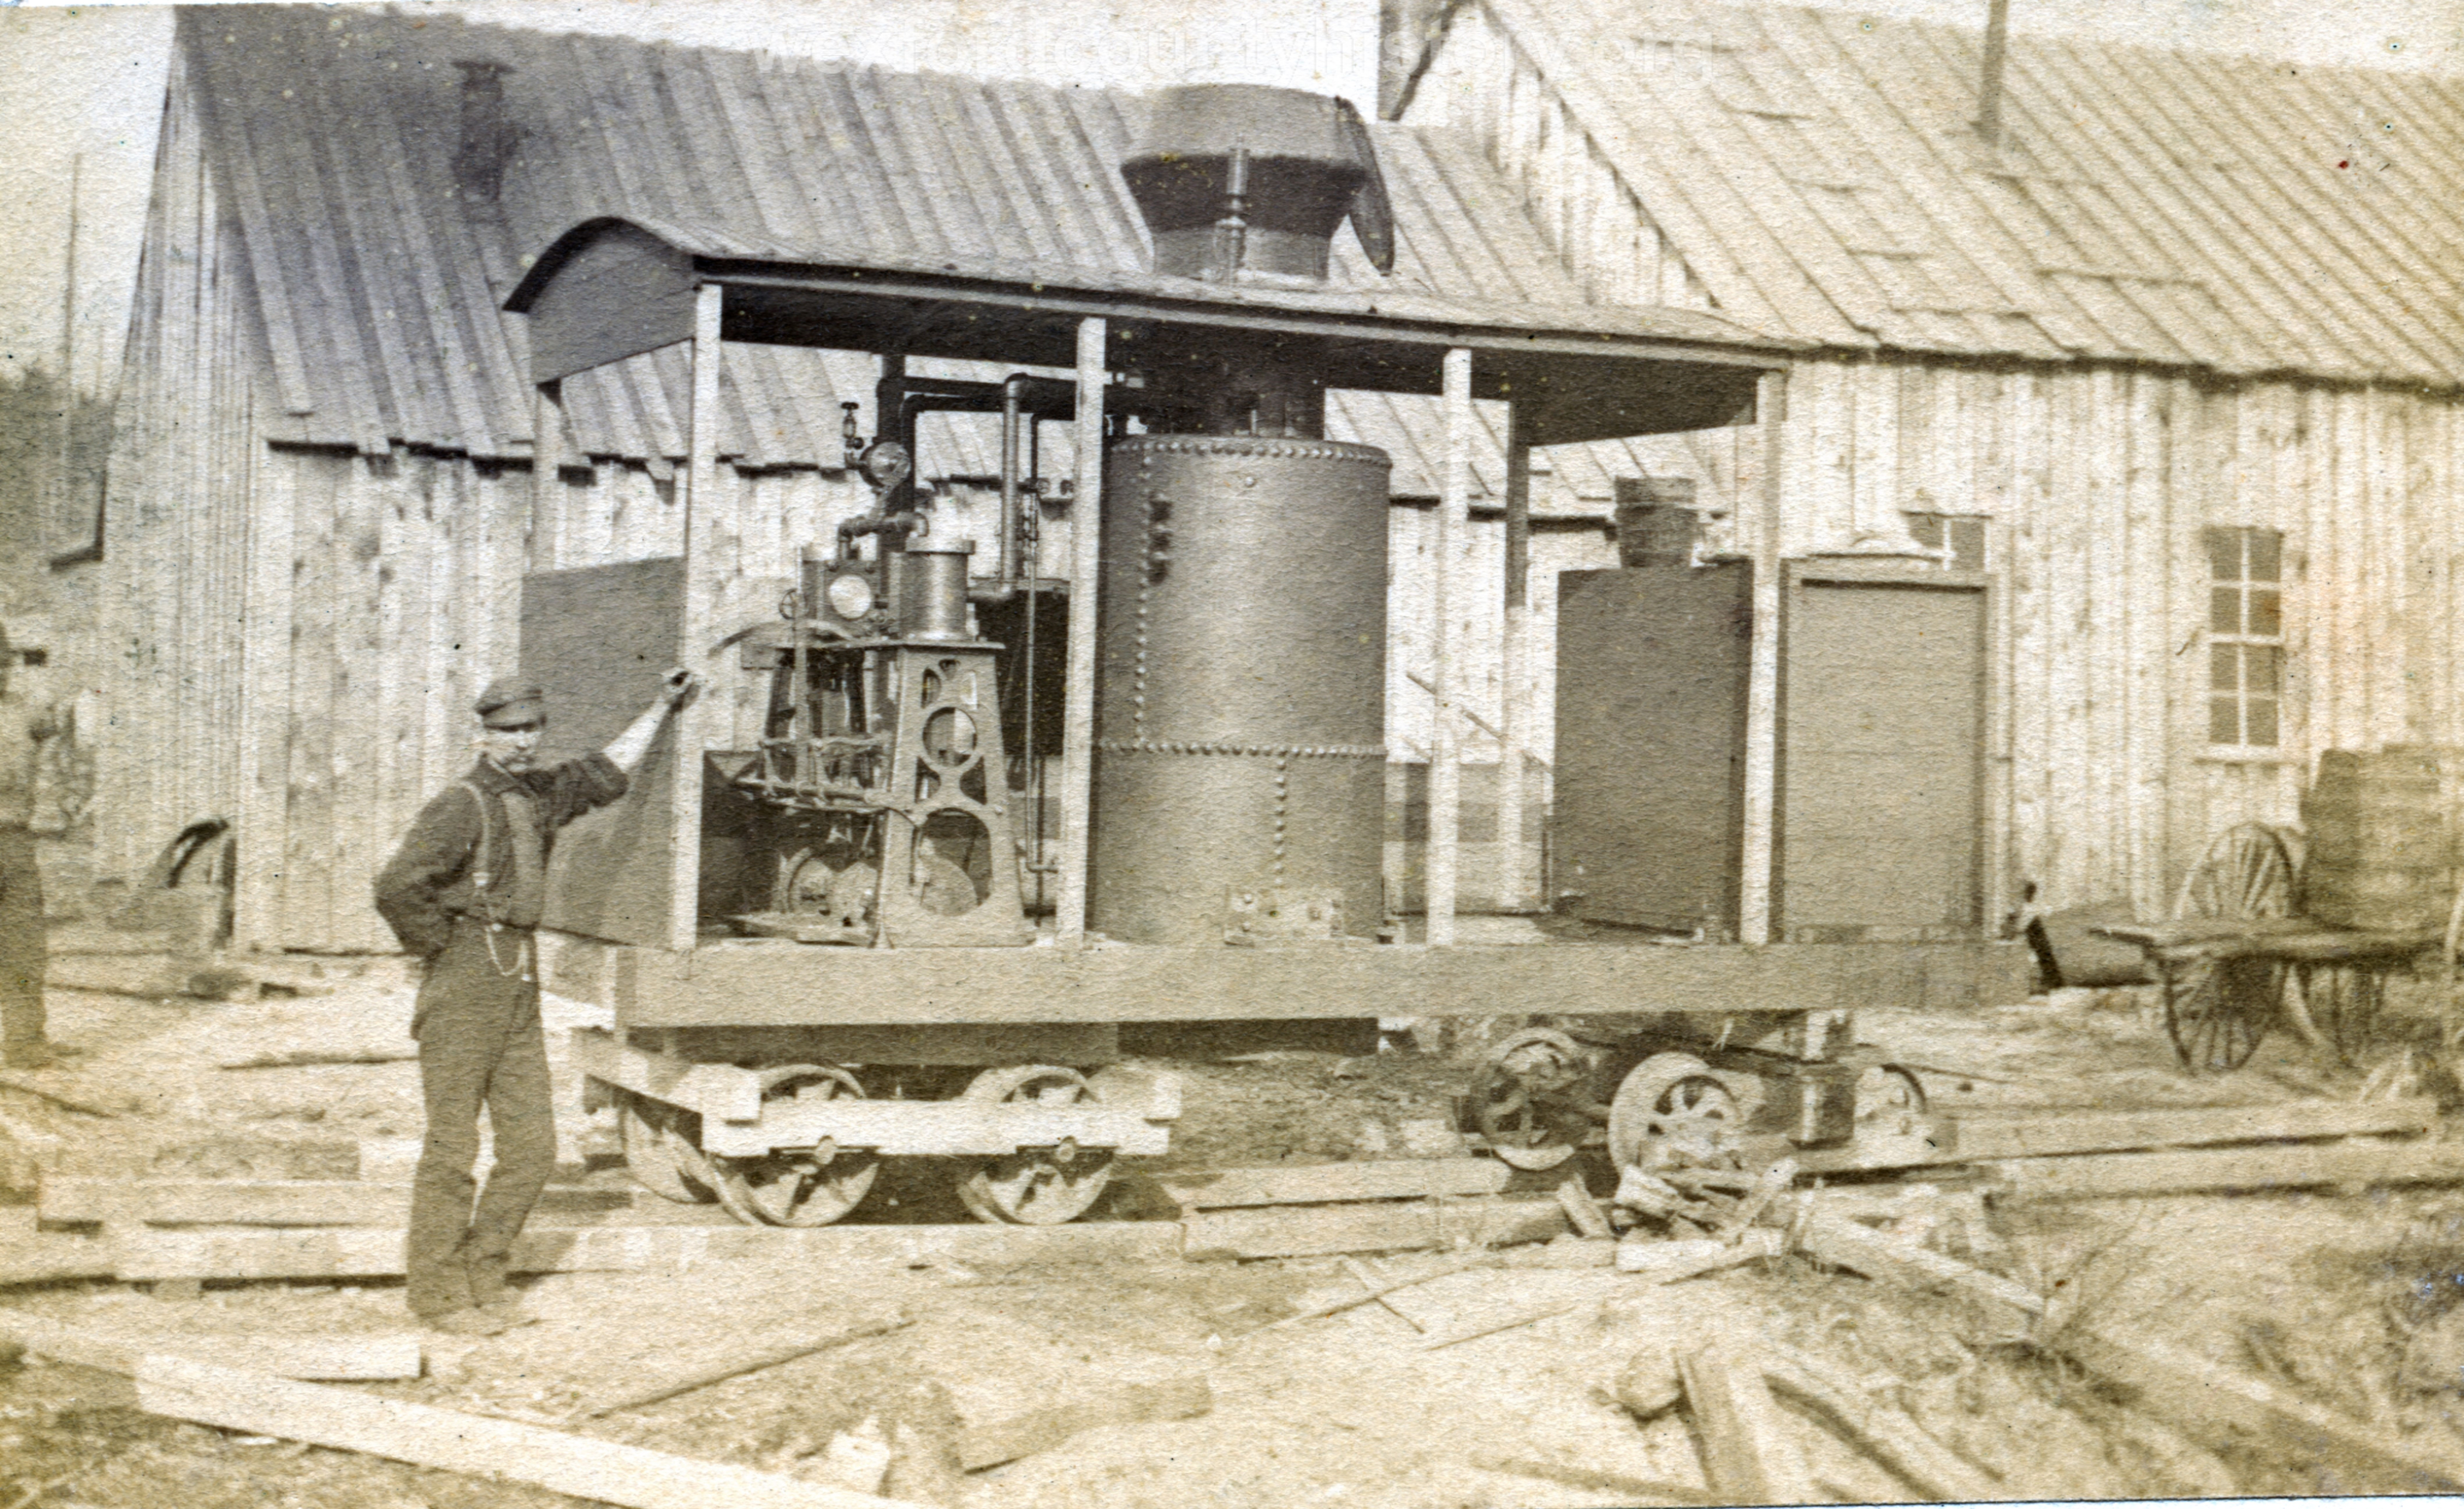 Loco-Shay-early-unk-v1-Manistee-Museum-photo